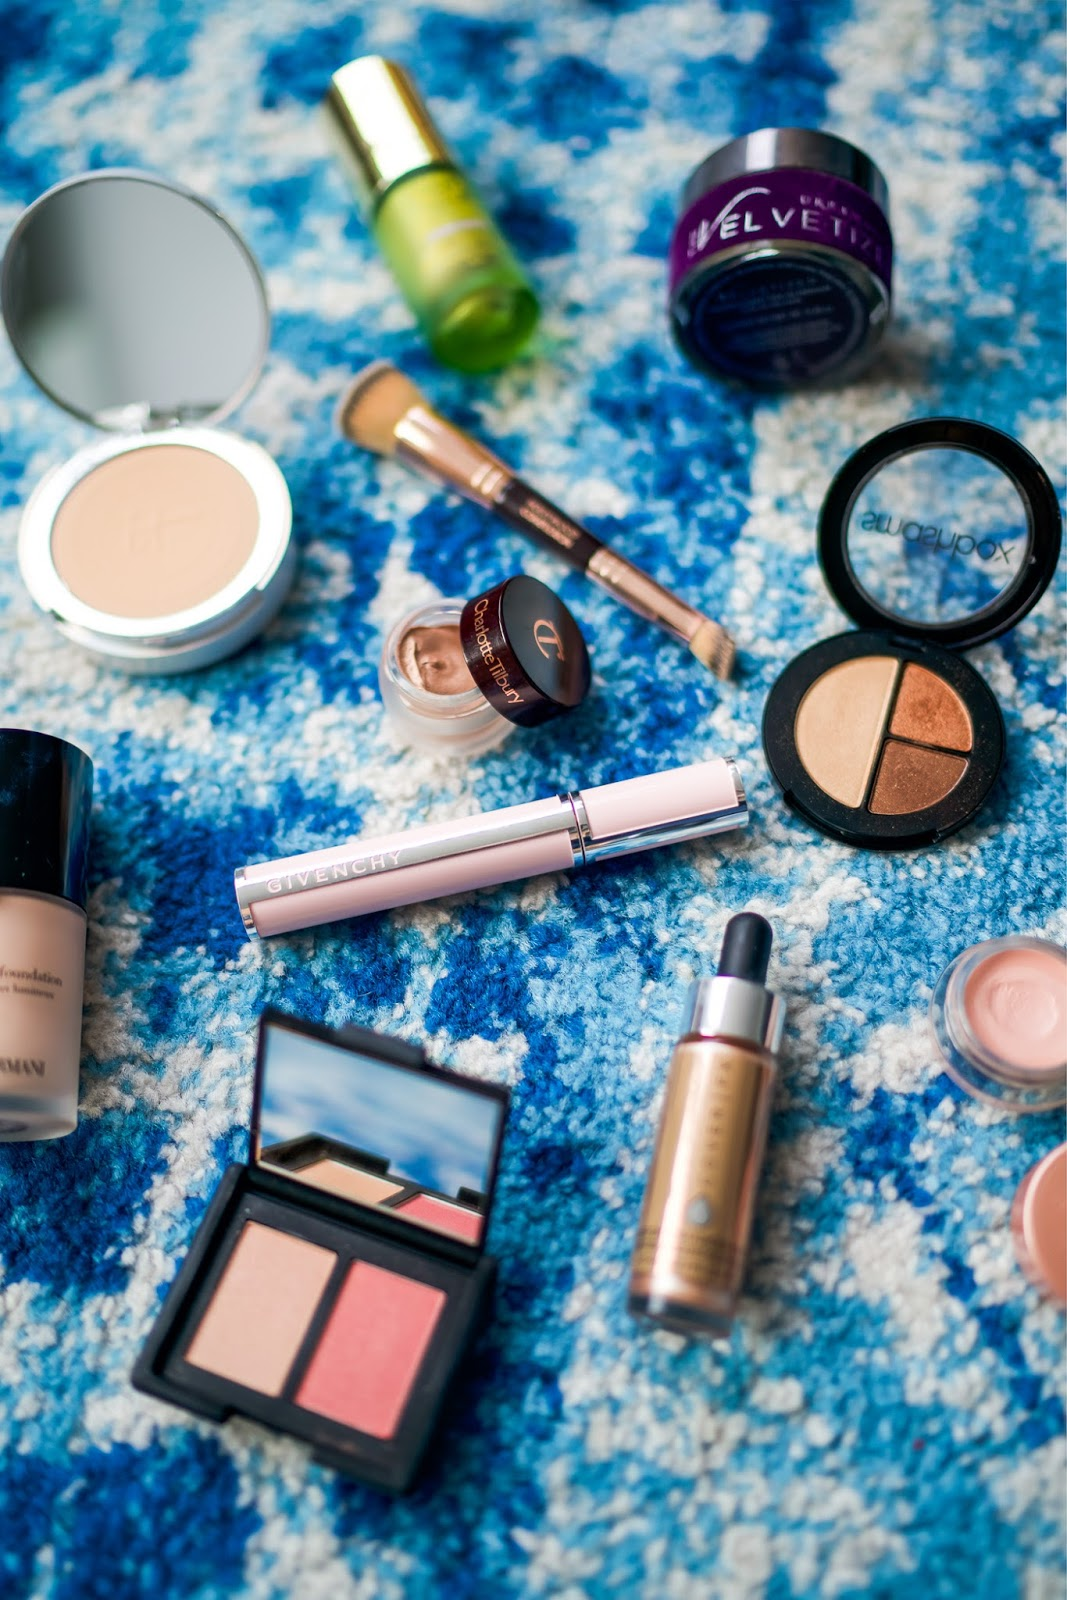 Makeup Review: January by popular New York style blogger Covering the Bases